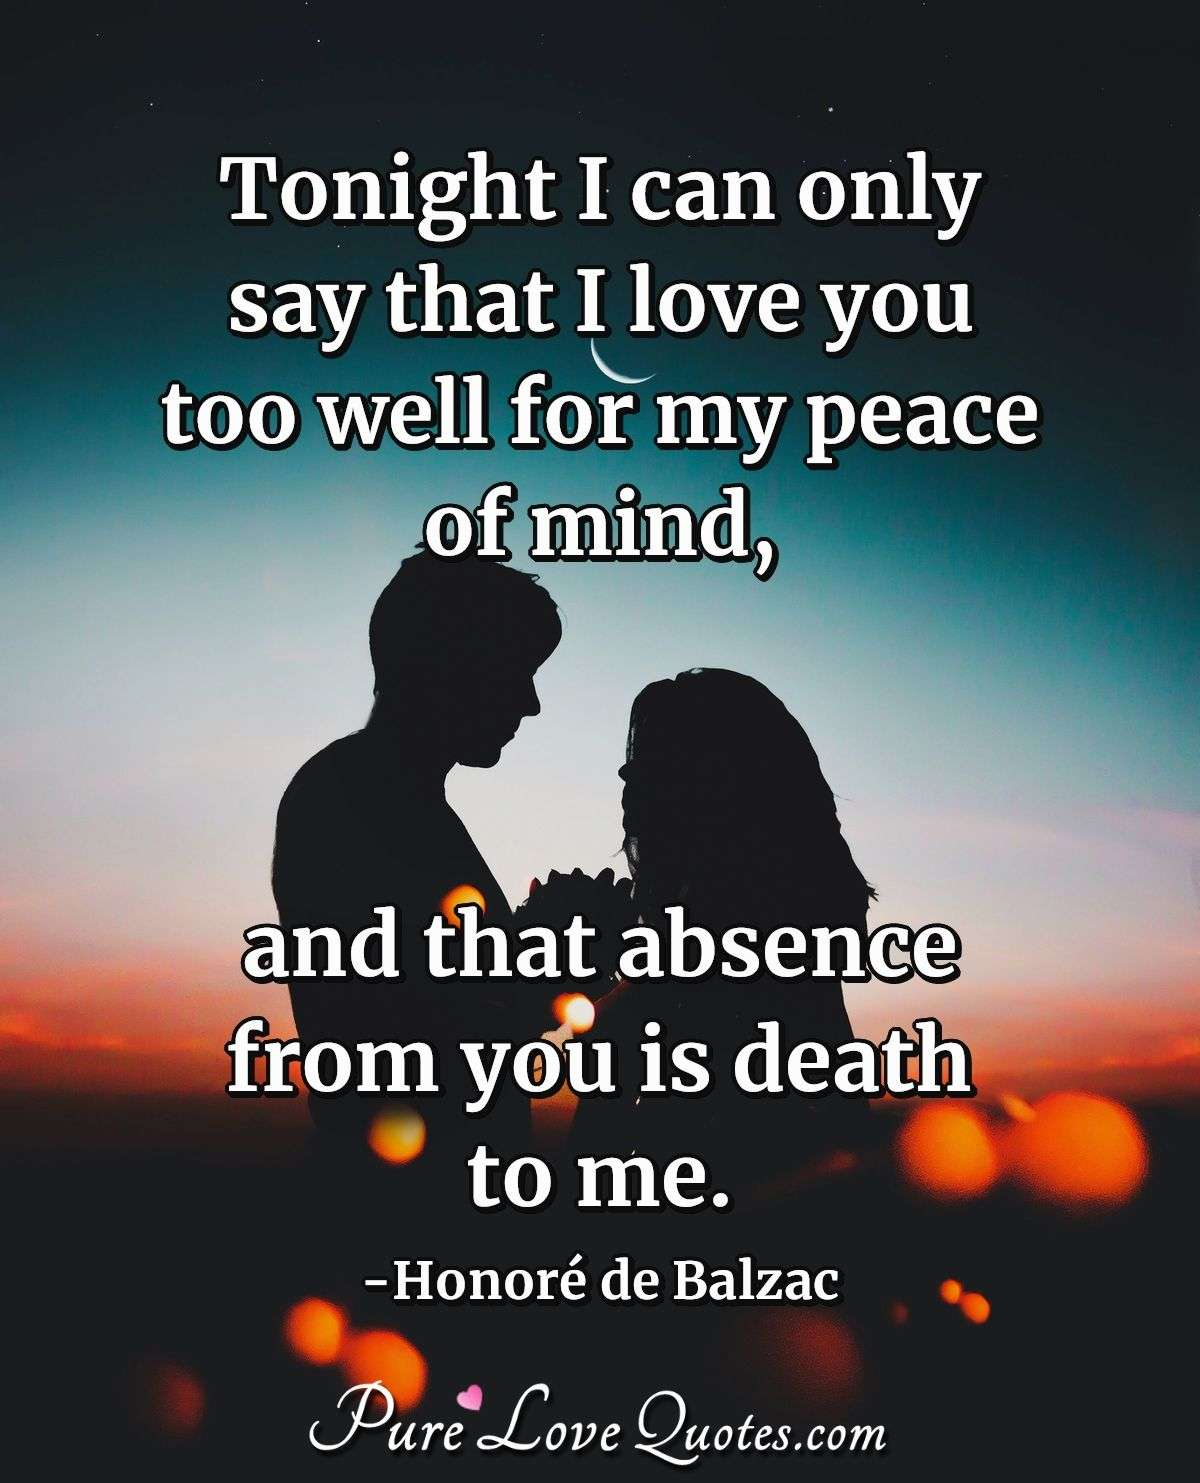 Tonight I can only say that I love you too well for my peace of mind, and that absence from you is death to me. - Honoré  de Balzac